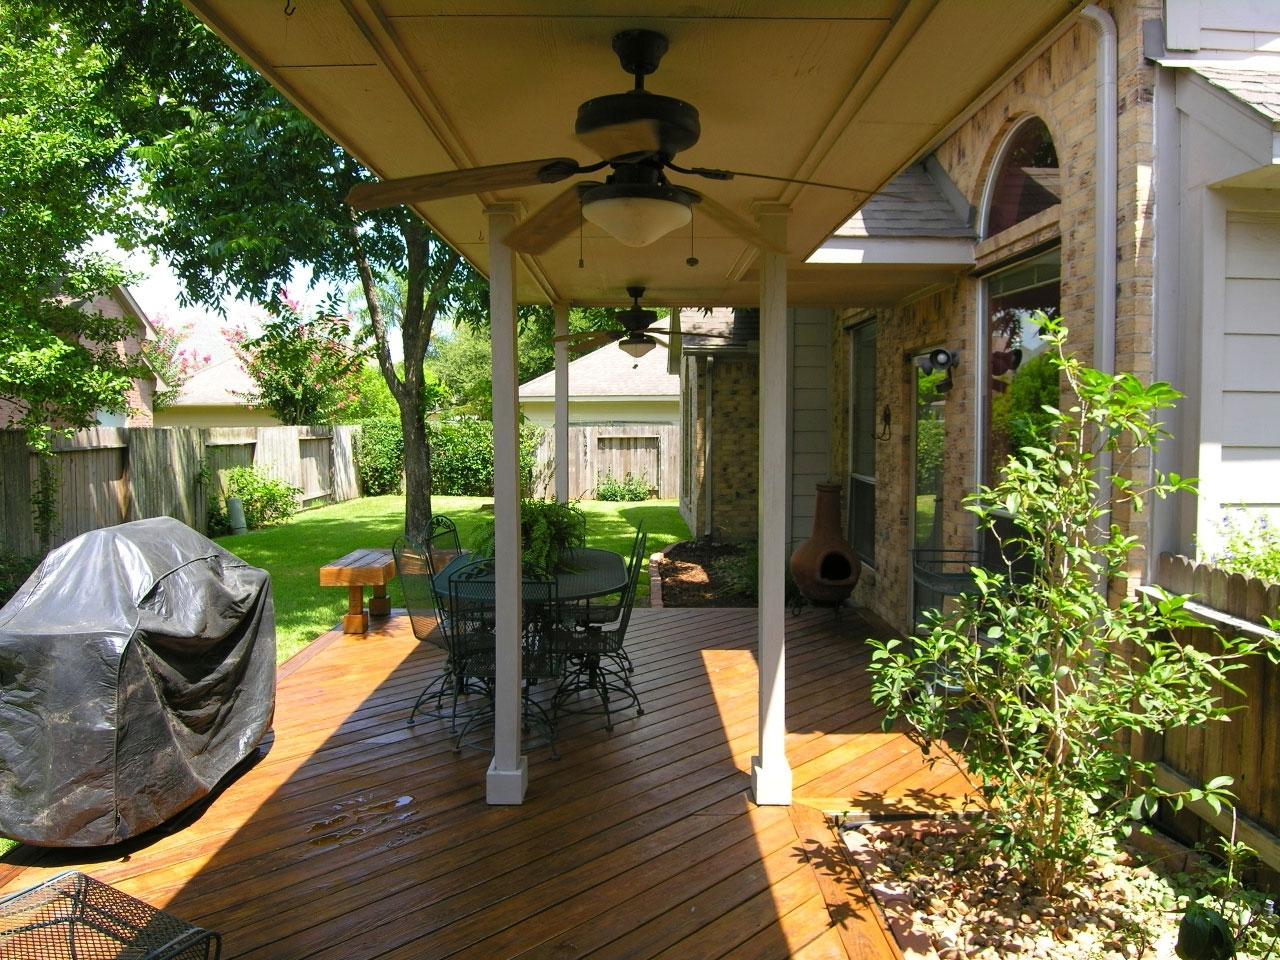 Outdoor Porch Ceiling Fans With Lights Inch Fan Door Ideas Hunter Pertaining To Most Up To Date Outdoor Ceiling Fans For Decks (View 13 of 20)